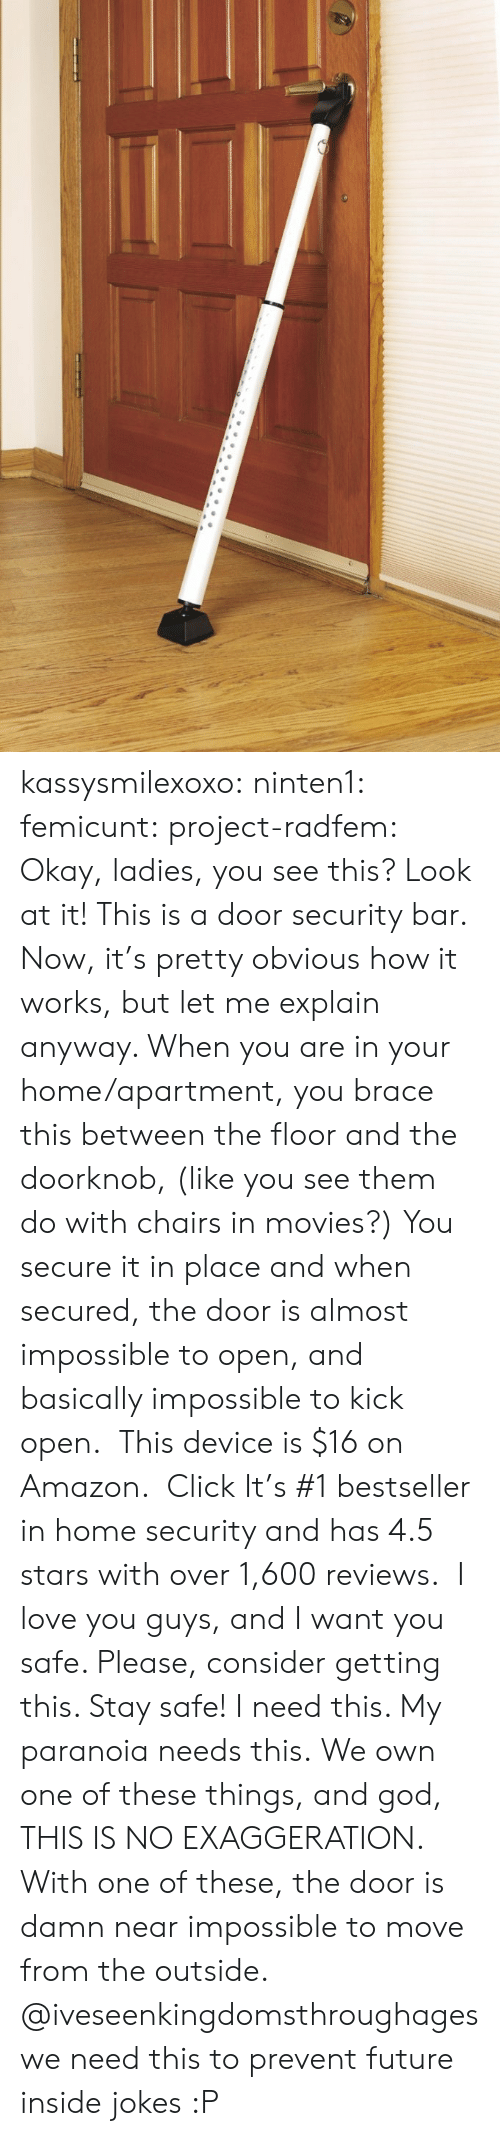 home security: kassysmilexoxo:  ninten1:  femicunt:  project-radfem:   Okay, ladies, you see this? Look at it! This is a door security bar. Now, it's pretty obvious how it works, but let me explain anyway. When you are in your home/apartment, you brace this between the floor and the doorknob, (like you see them do with chairs in movies?) You secure it in place and when secured, the door is almost impossible to open, and basically impossible to kick open.  This device is $16 on Amazon.  Click It's #1 bestseller in home security and has 4.5 stars with over 1,600 reviews.  I love you guys, and I want you safe. Please, consider getting this. Stay safe!  I need this. My paranoia needs this.  We own one of these things, and god, THIS IS NO EXAGGERATION. With one of these, the door is damn near impossible to move from the outside.   @iveseenkingdomsthroughages we need this to prevent future inside jokes :P